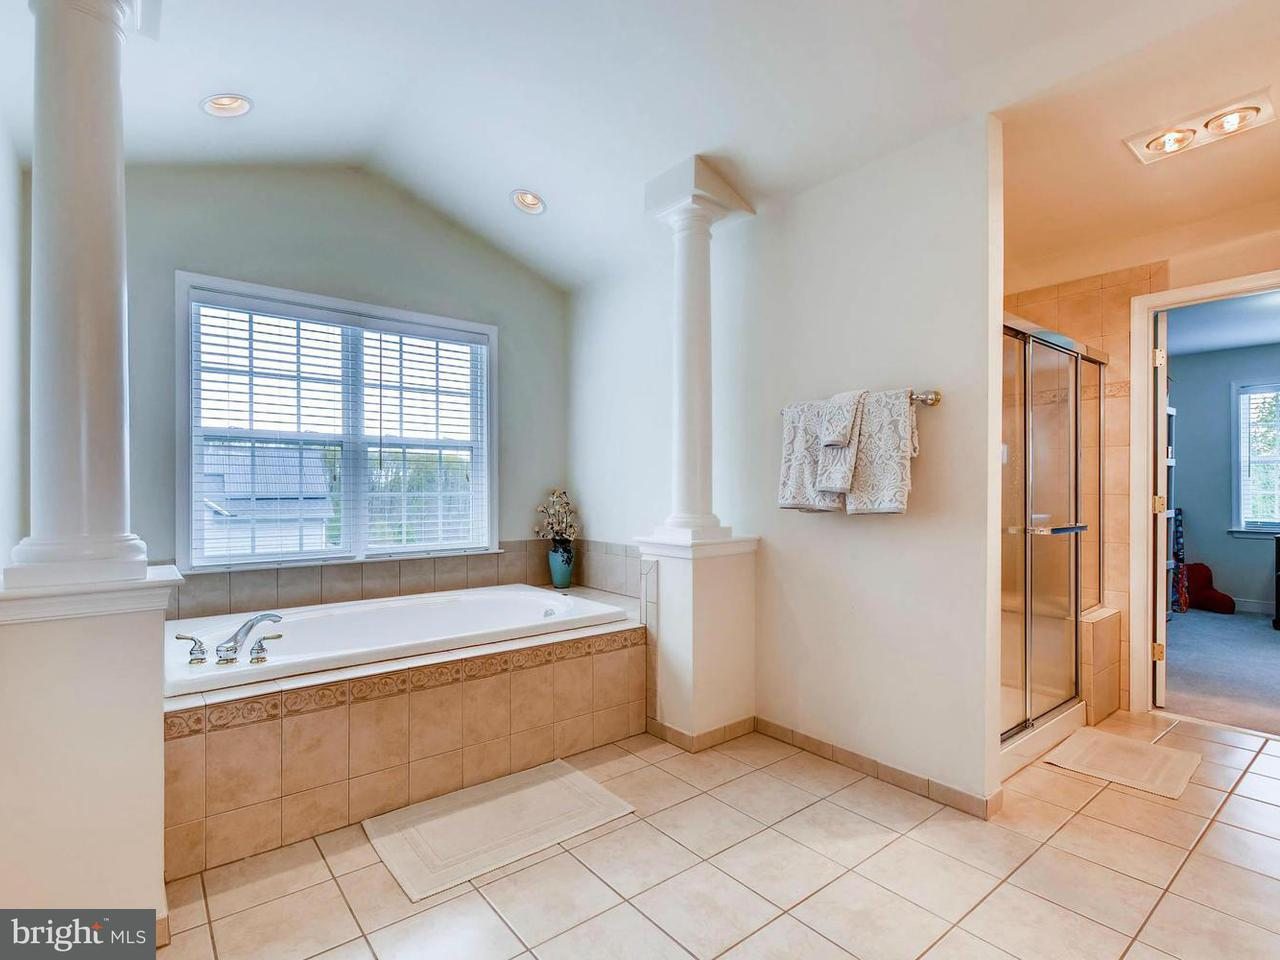 Additional photo for property listing at 909 ZENITH Drive 909 ZENITH Drive Freeland, 馬里蘭州 21053 美國